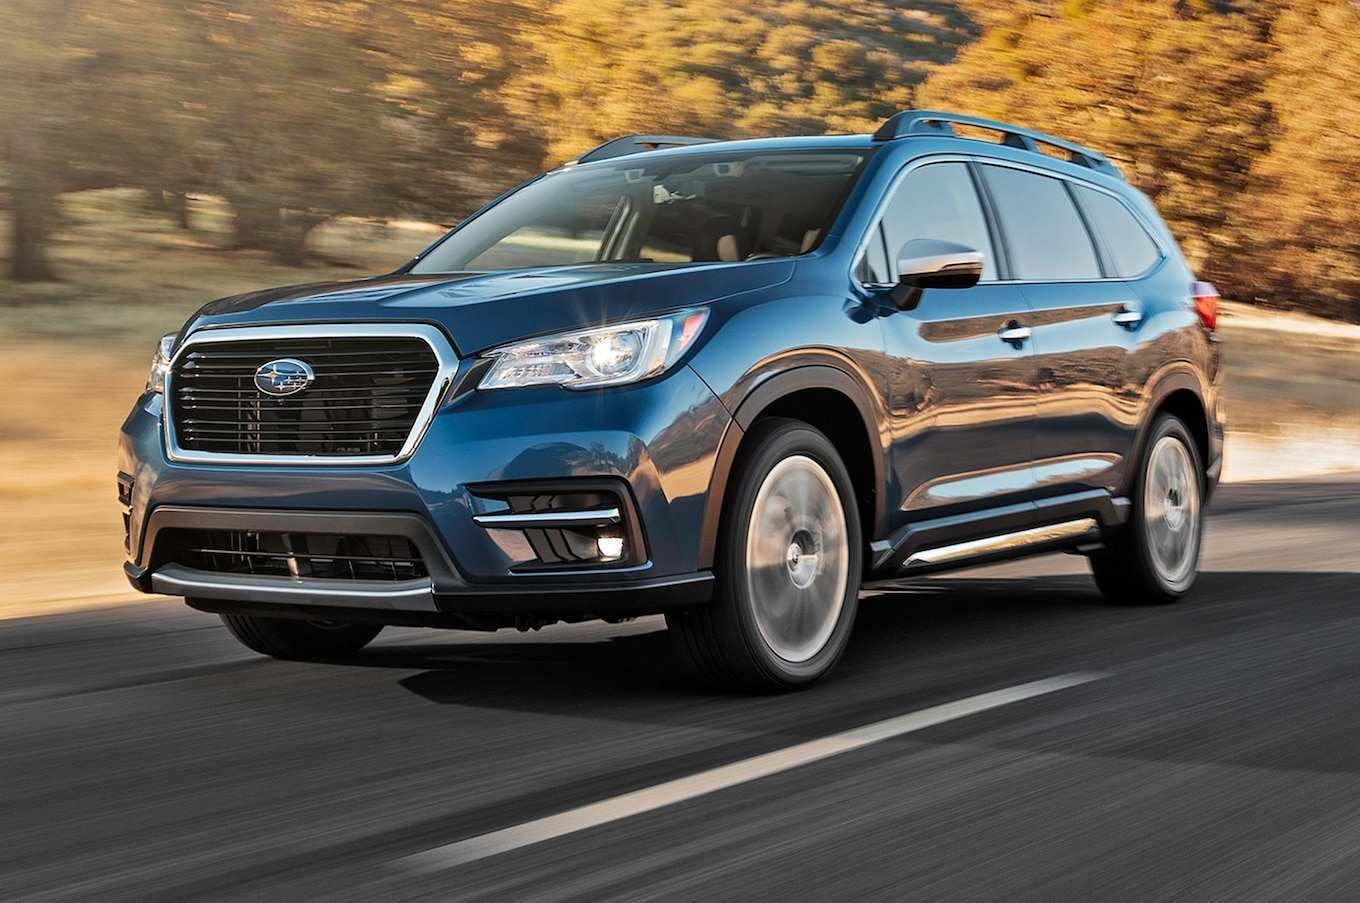 99 Gallery of The Subaru 2019 Pickup Specs Pictures with The Subaru 2019 Pickup Specs